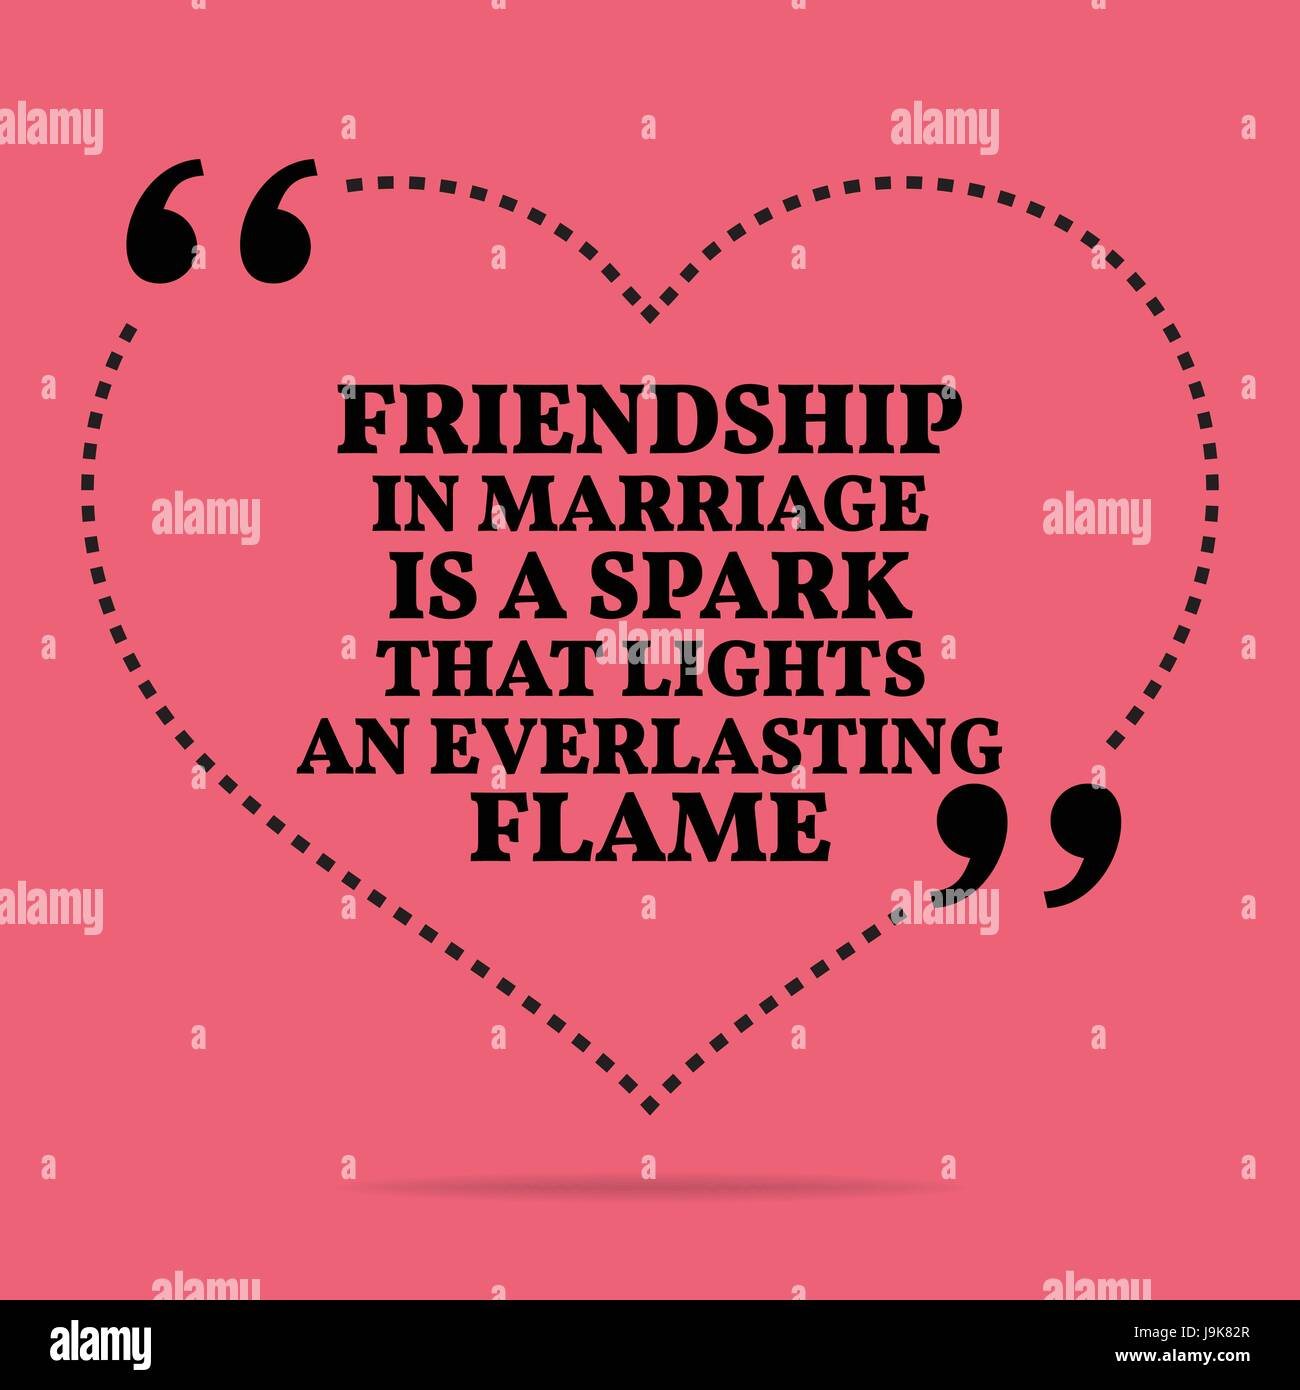 Inspirational Love Marriage Quote Friendship In Marriage Is A Spark